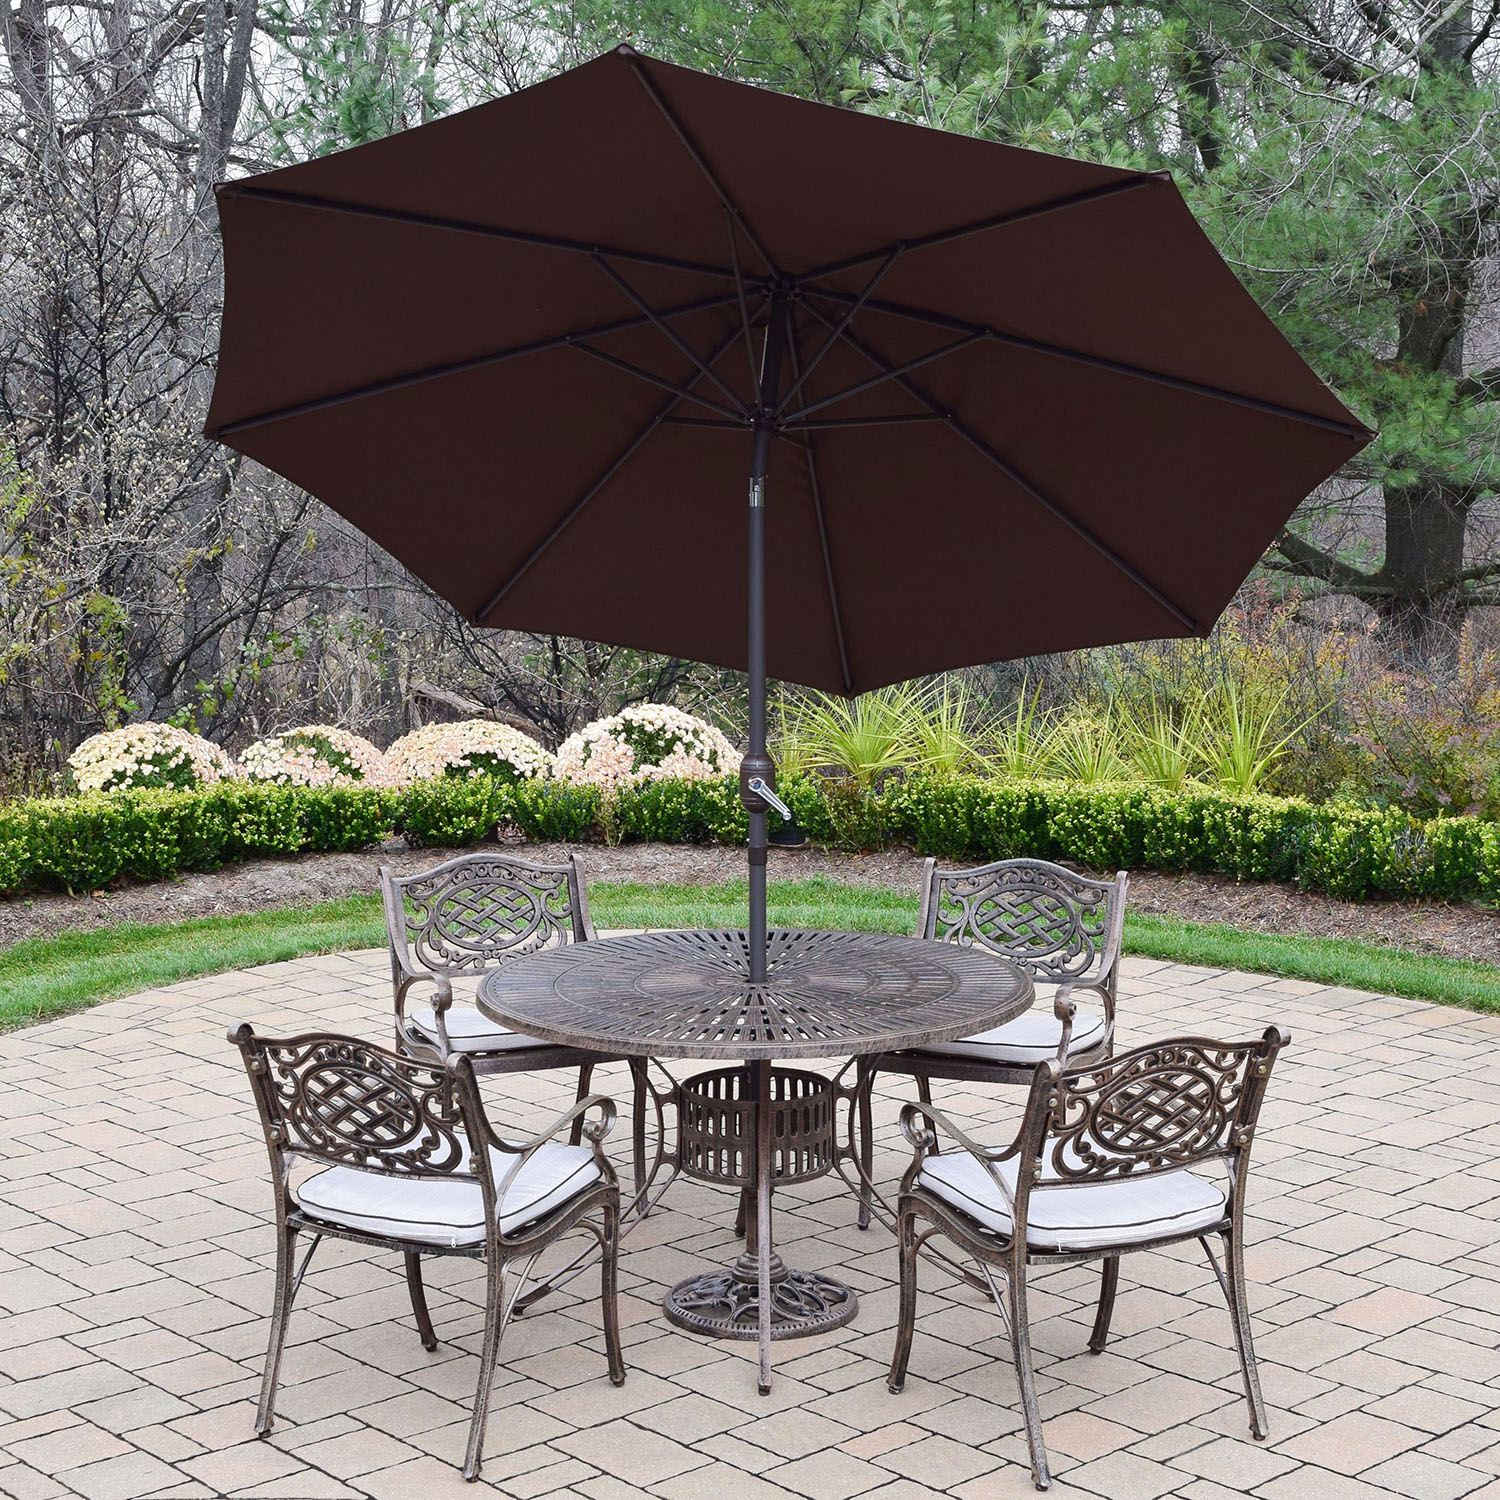 Information about Sunray Mississippi Antique Bronze Dining Set Umbrella Product Photo